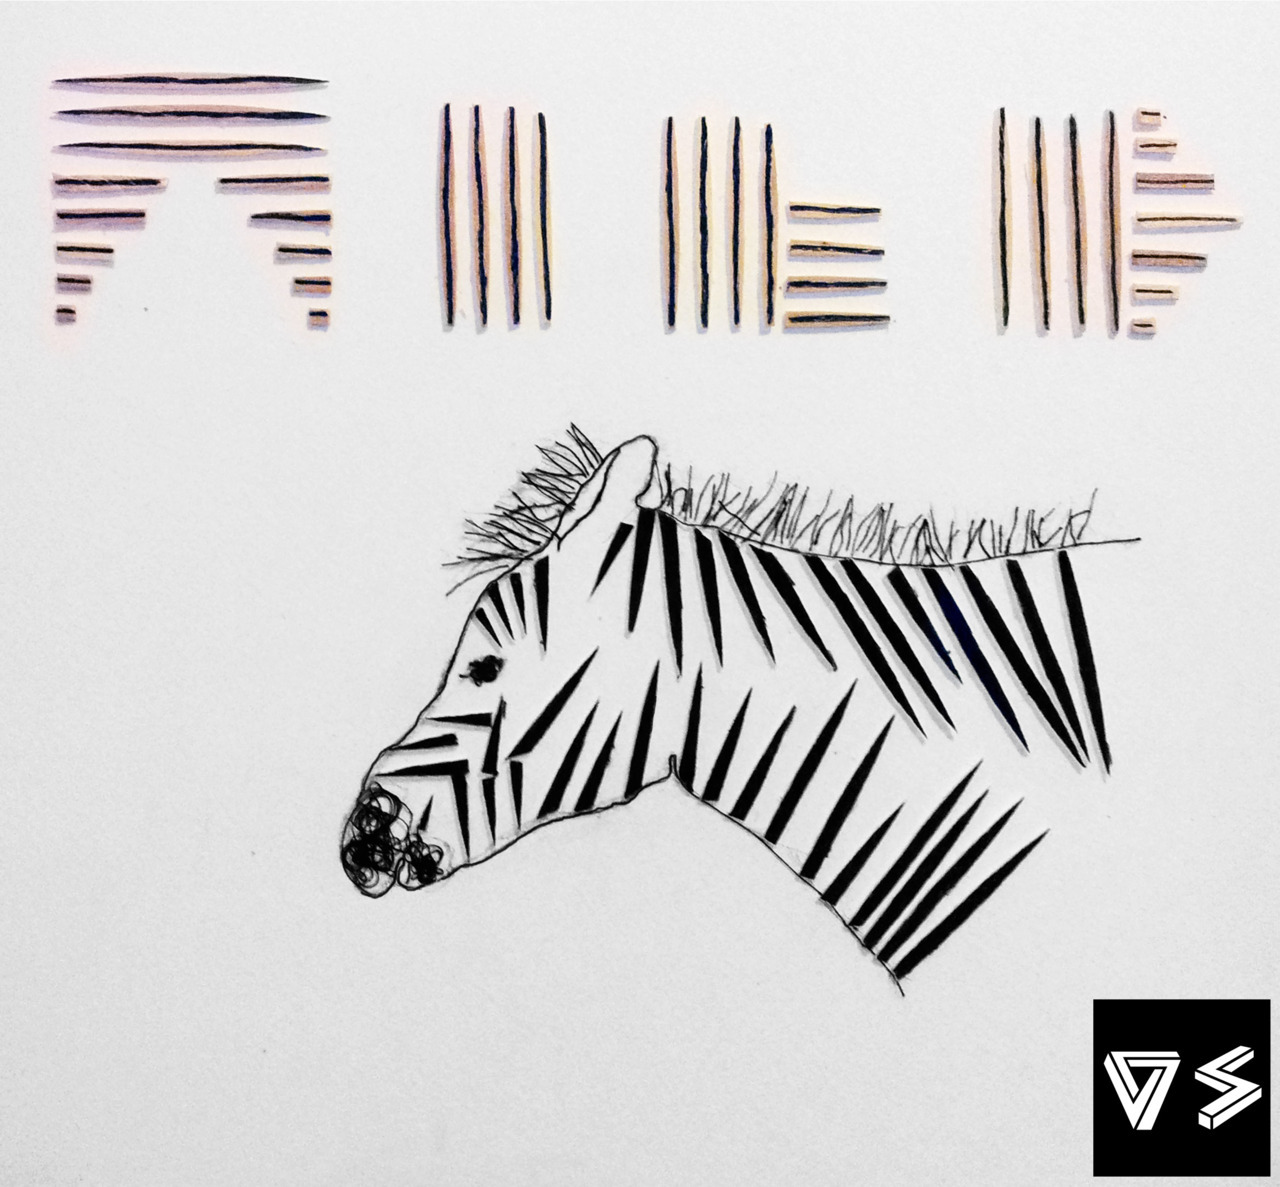 Cebra Salvaje. Hecho con palillos de madera e hilo. Wild Zebra. Made with wood sticks and thread. V.S.